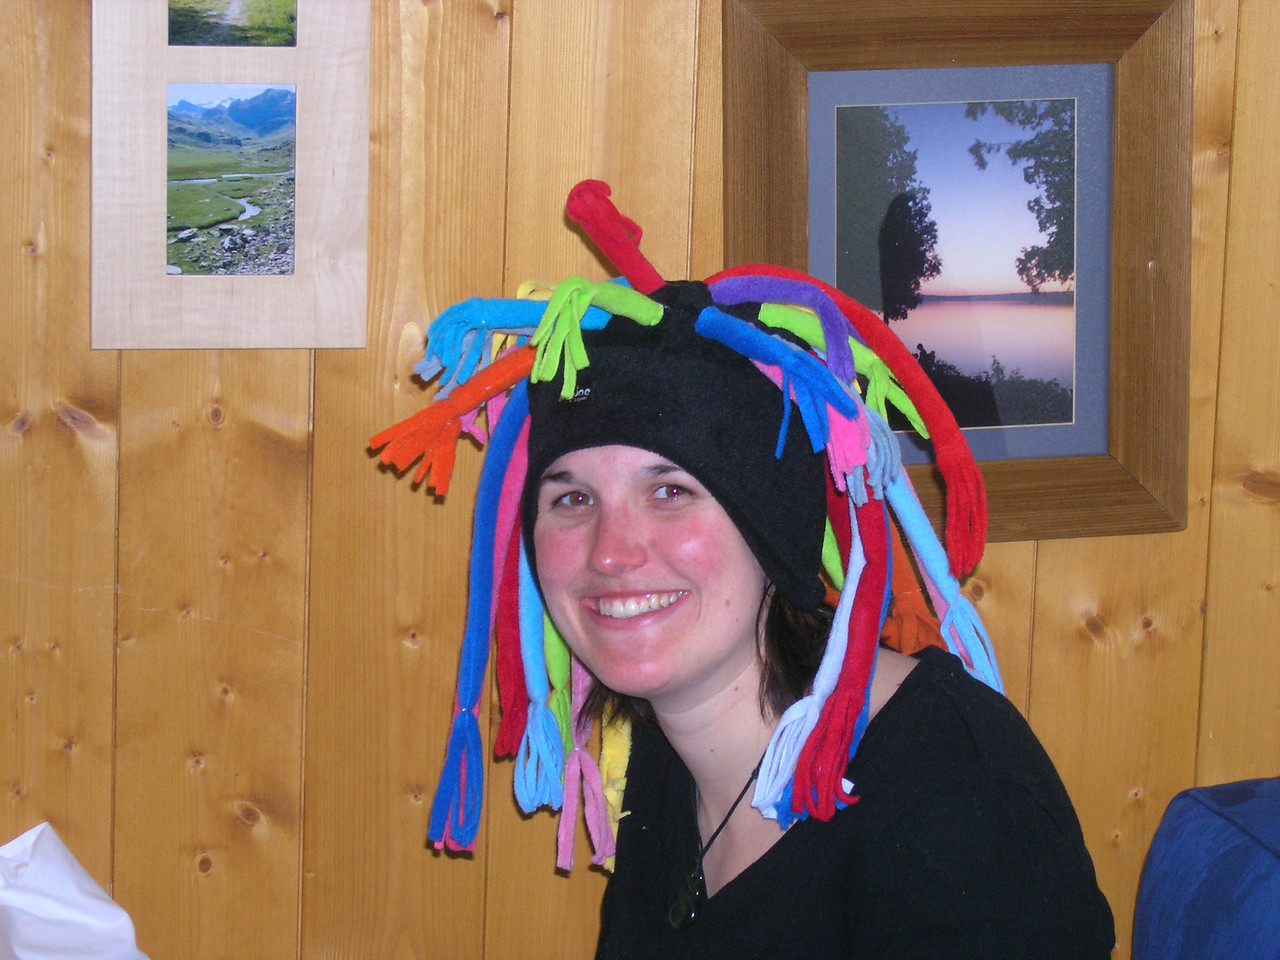 Hannah with her hard-earned silly hat